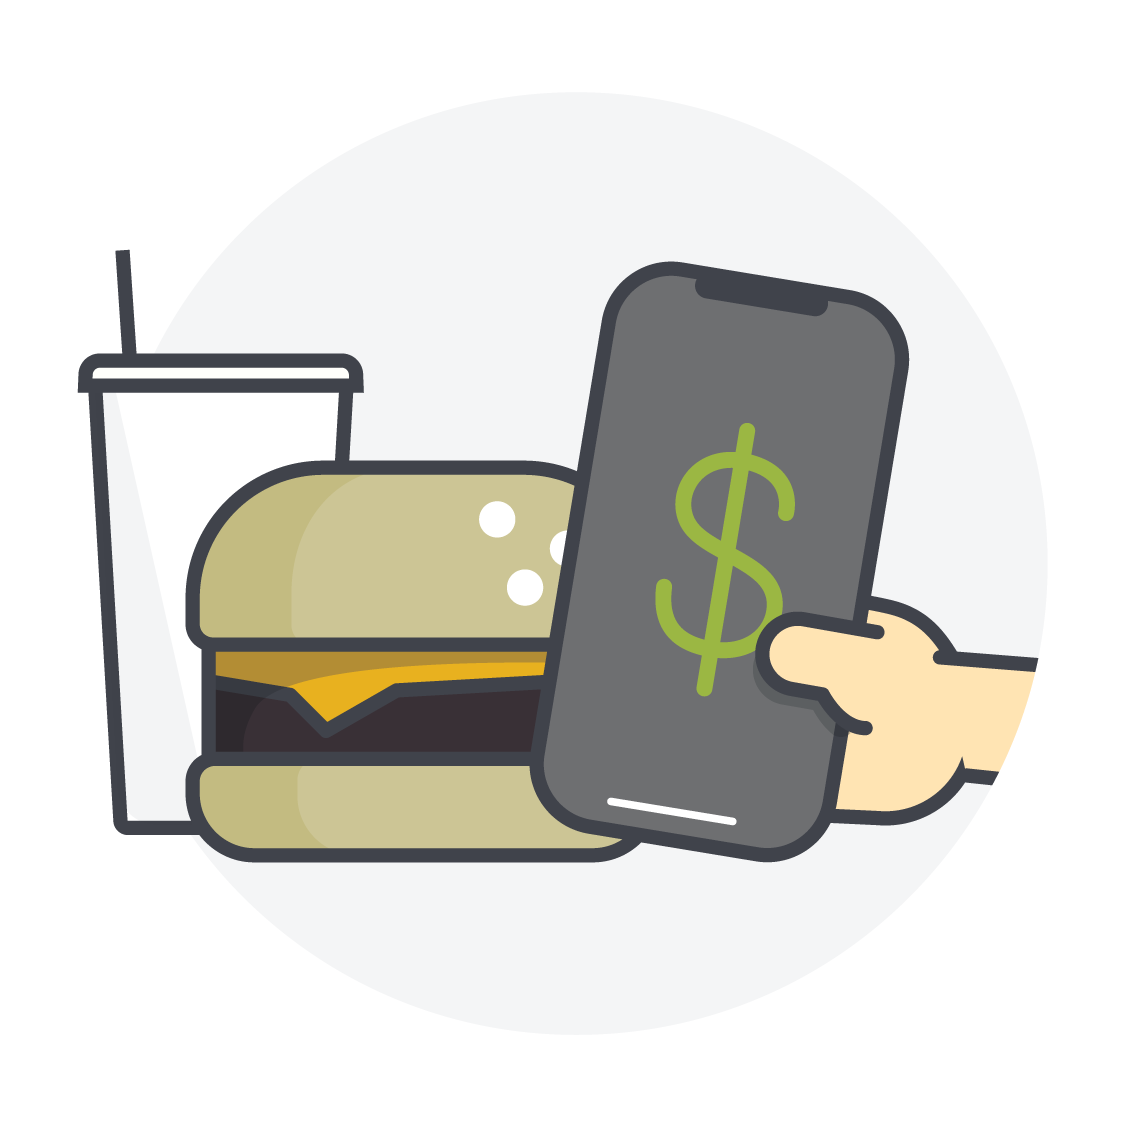 An icon showing a phone paying for a meal